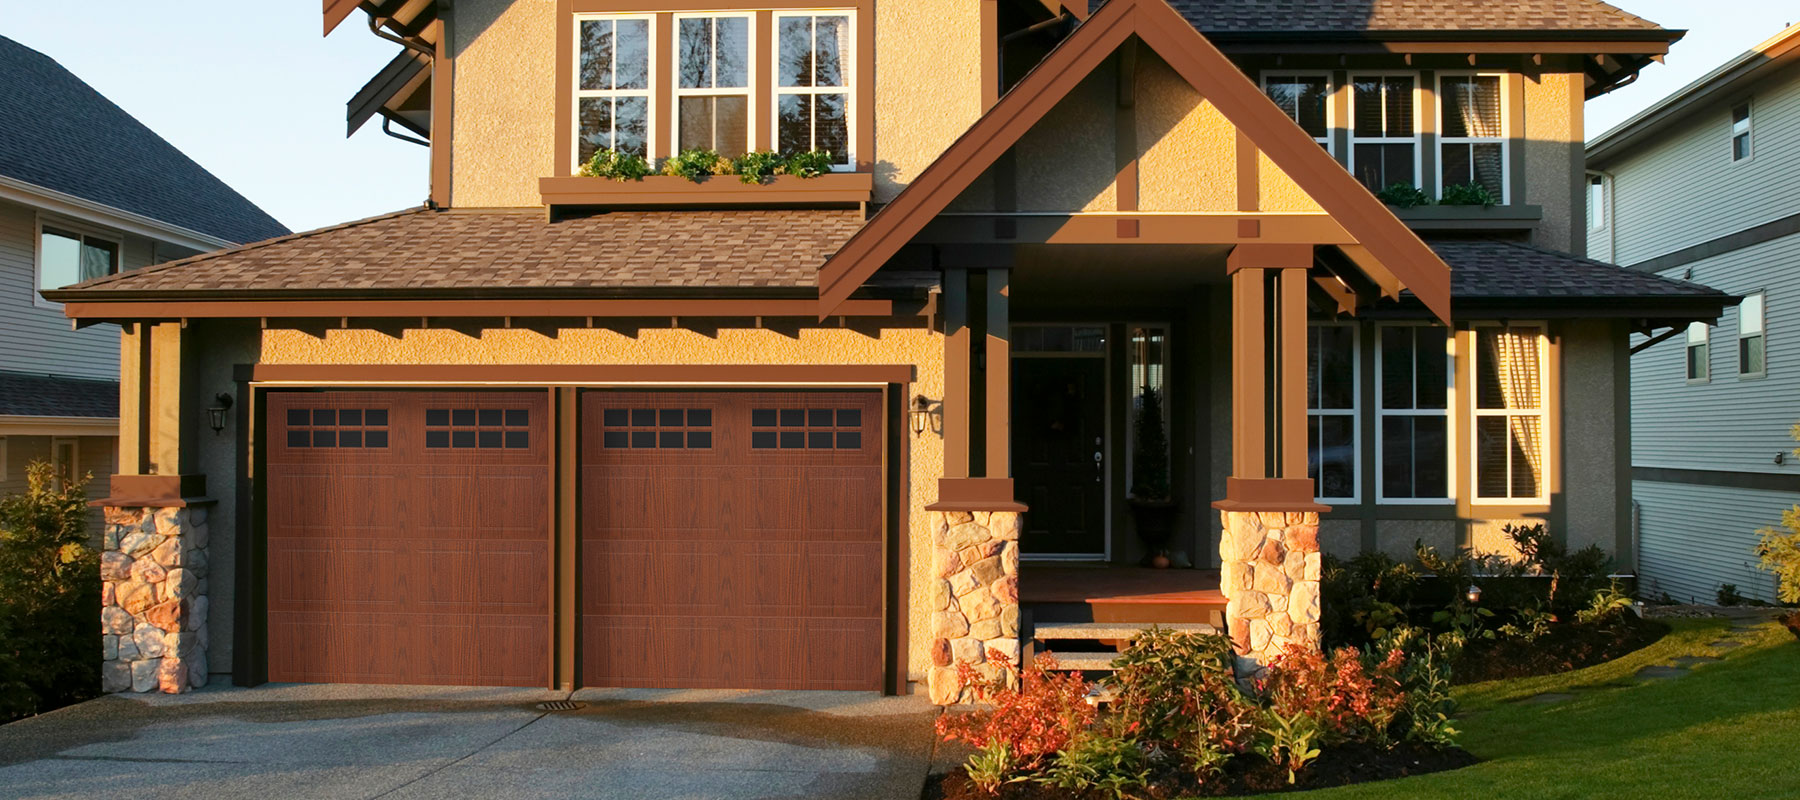 430/431 Grooved Panel Garage Door